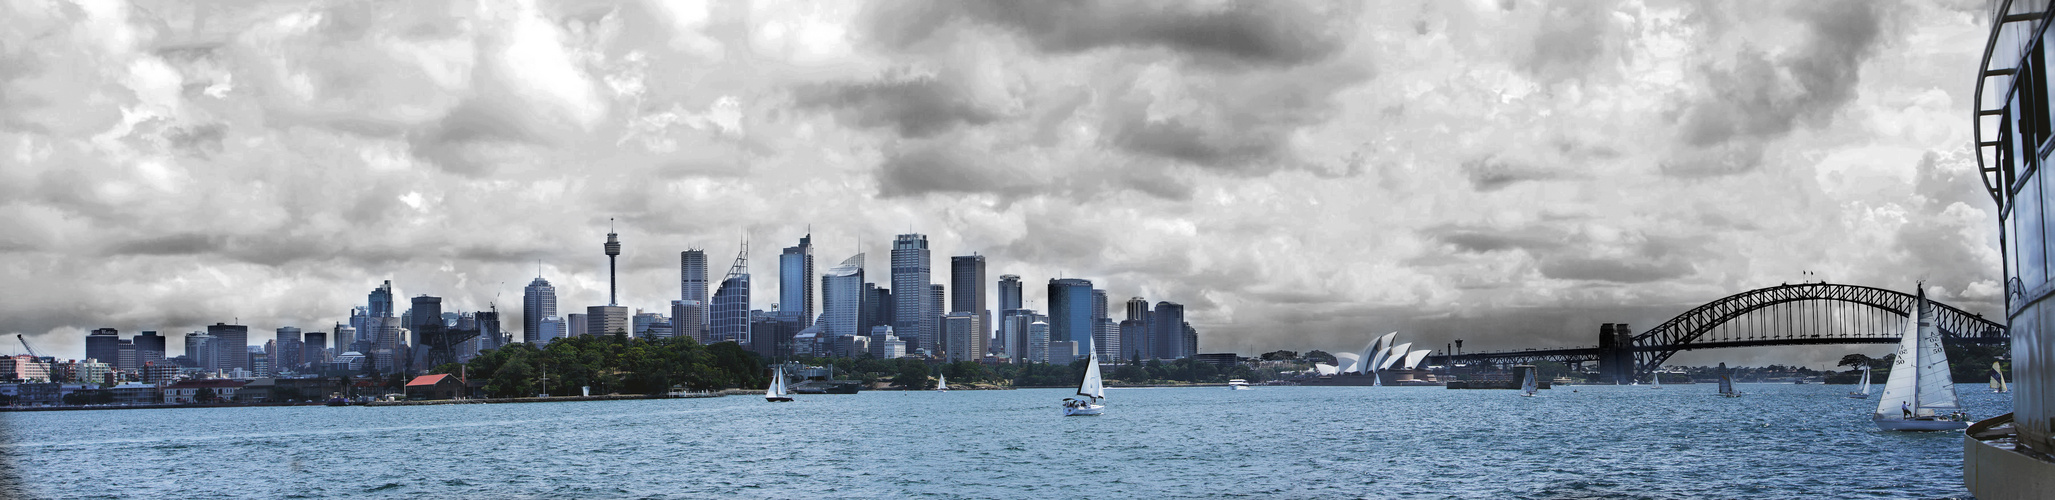 Heavy Clouds over Sydney